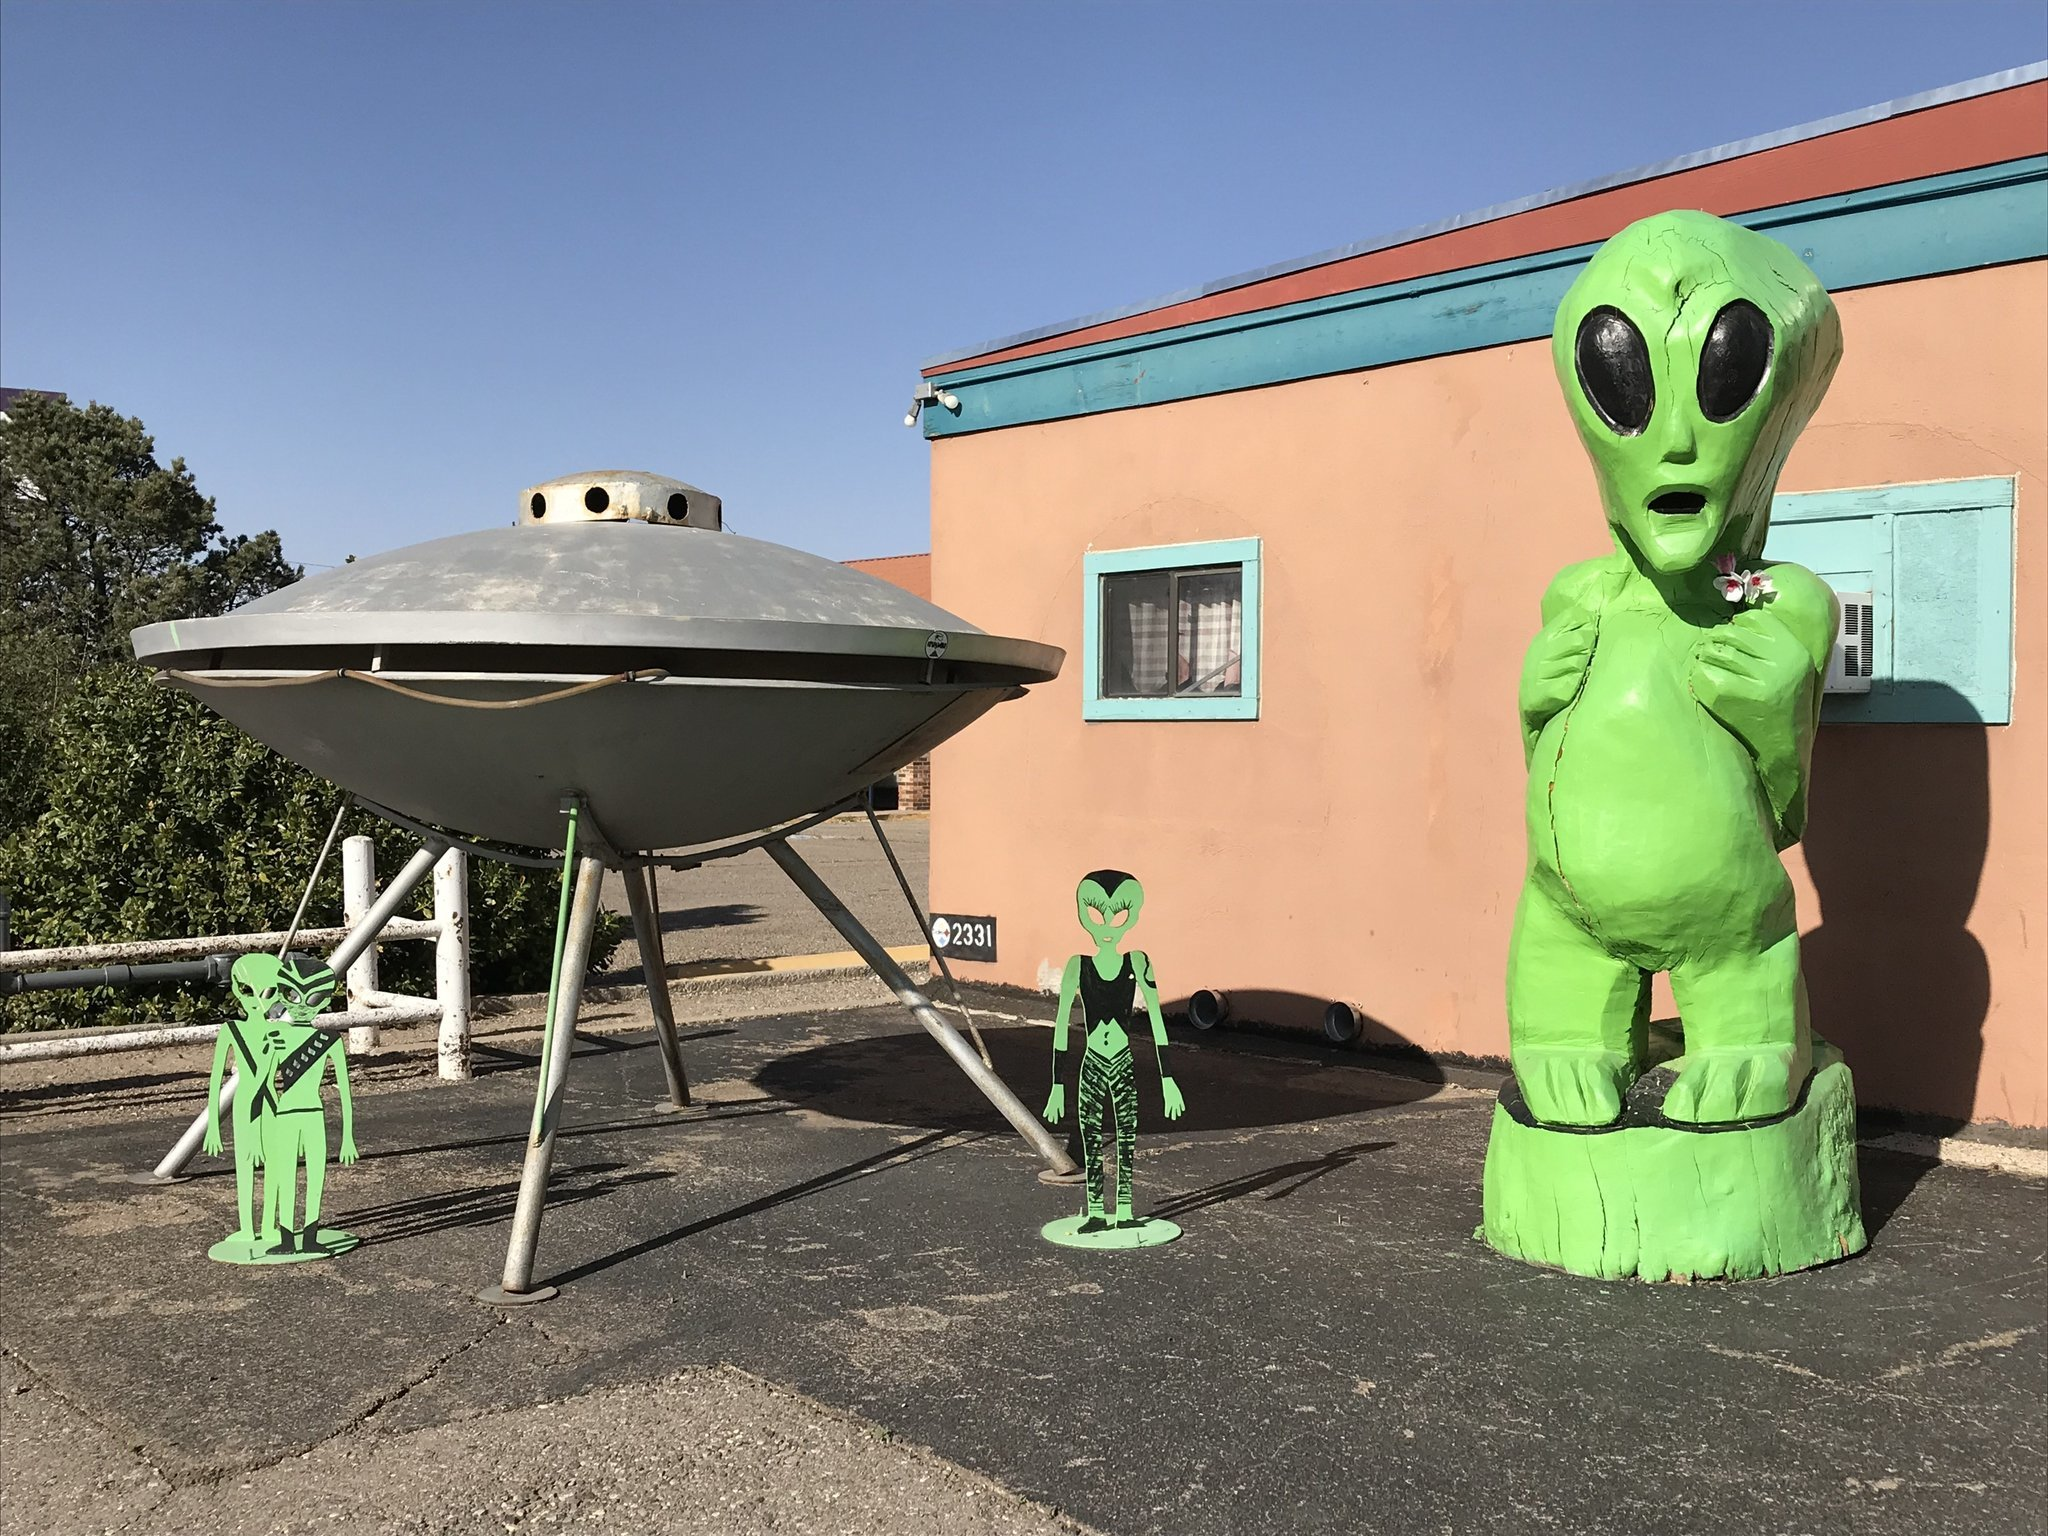 Aliens large and small populate Roswell, N.M.